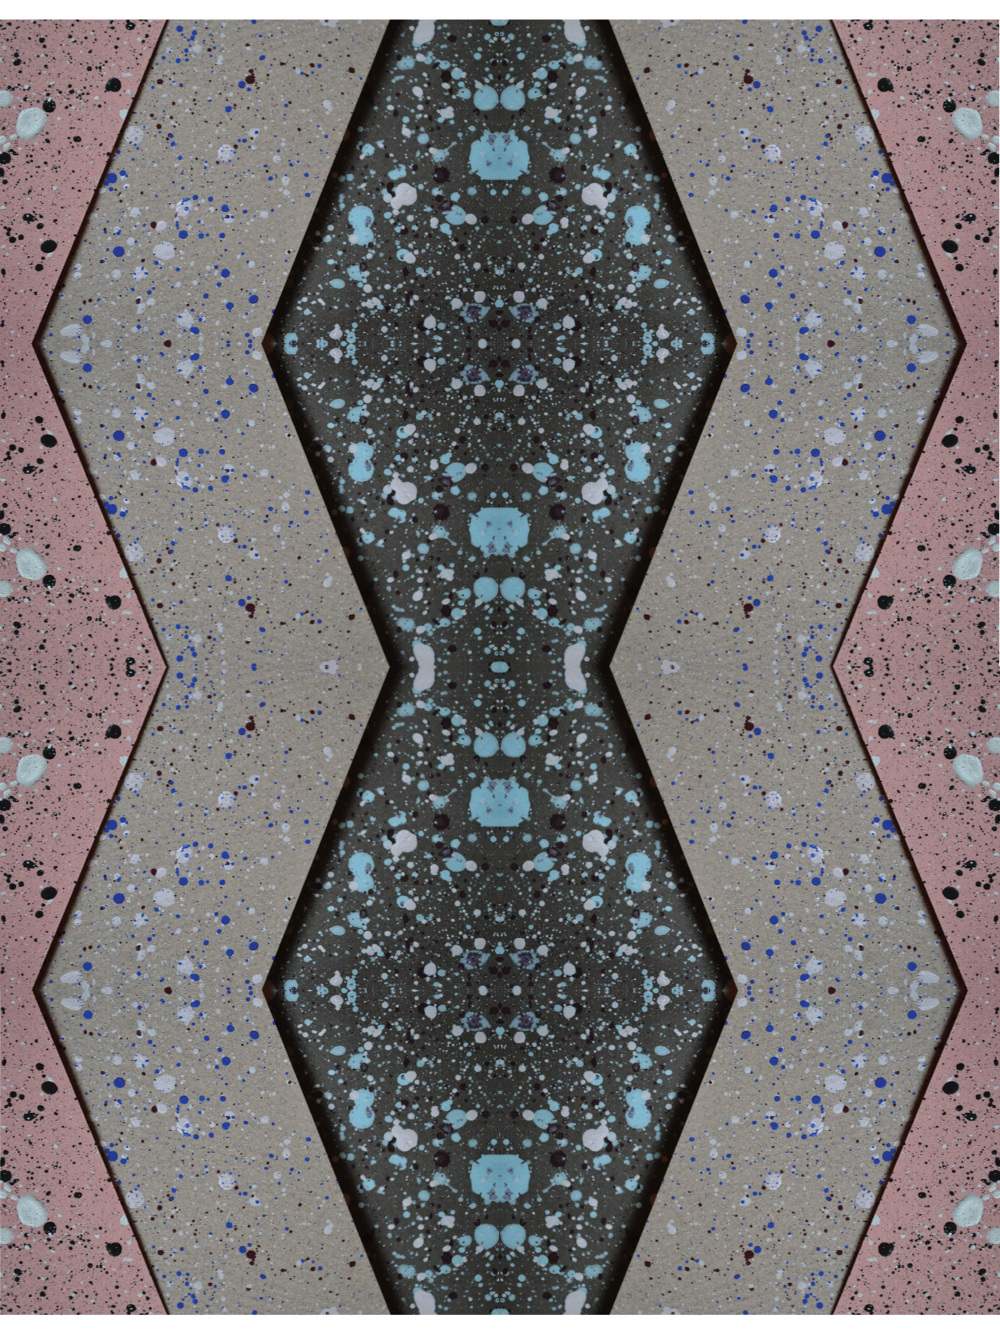 a zig zag and dotty design in pink and grey with blue dots.